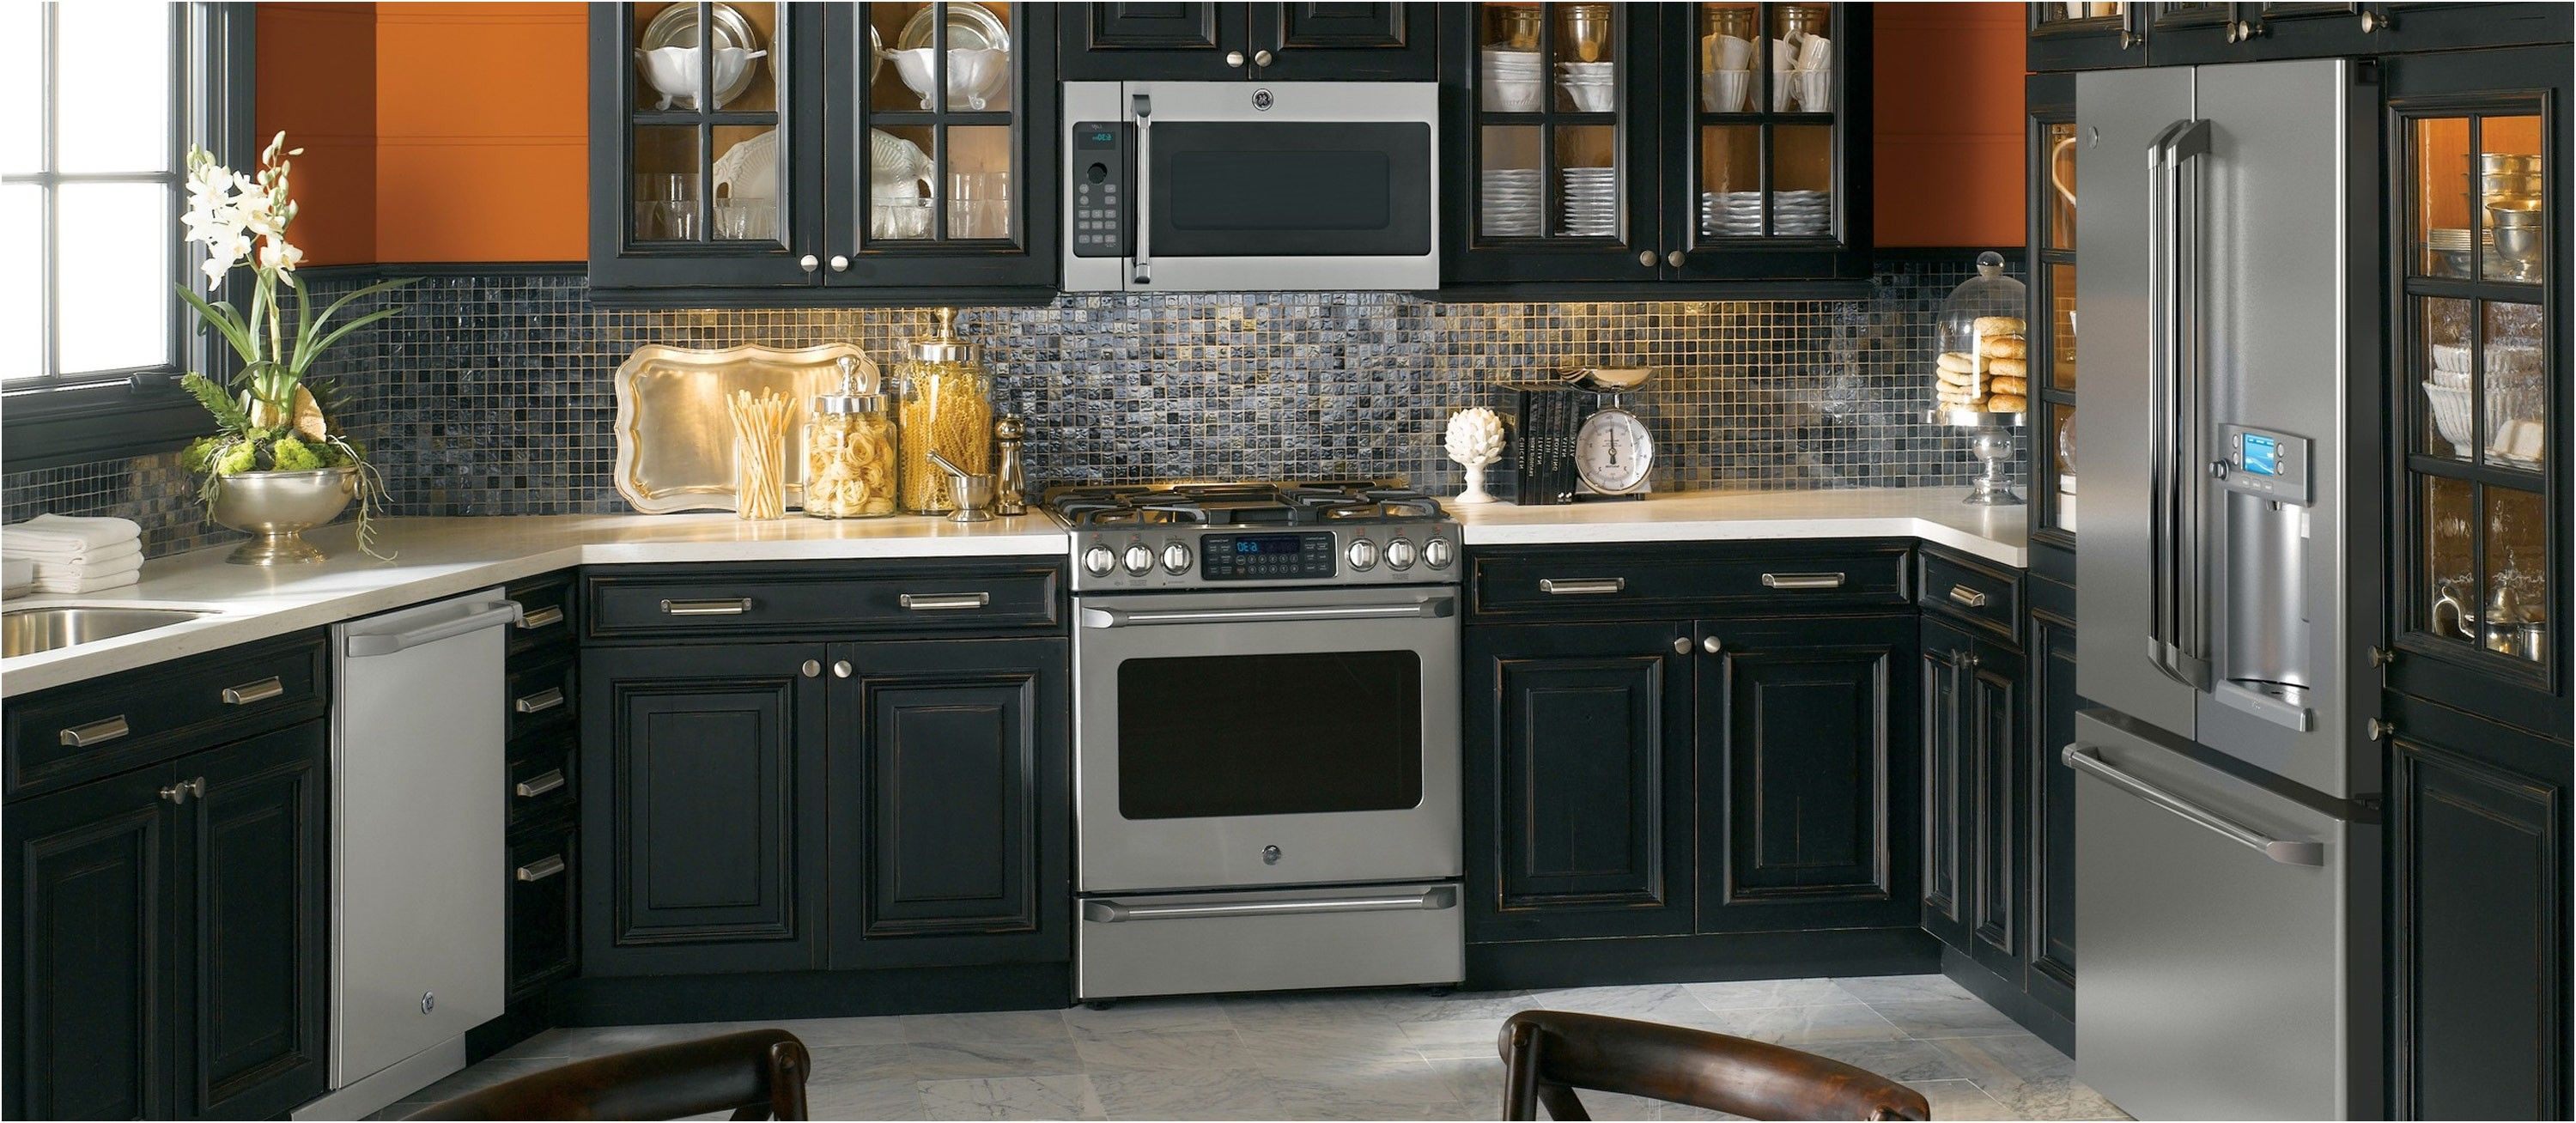 what s the best appliance finish for your kitchen appliances from ...